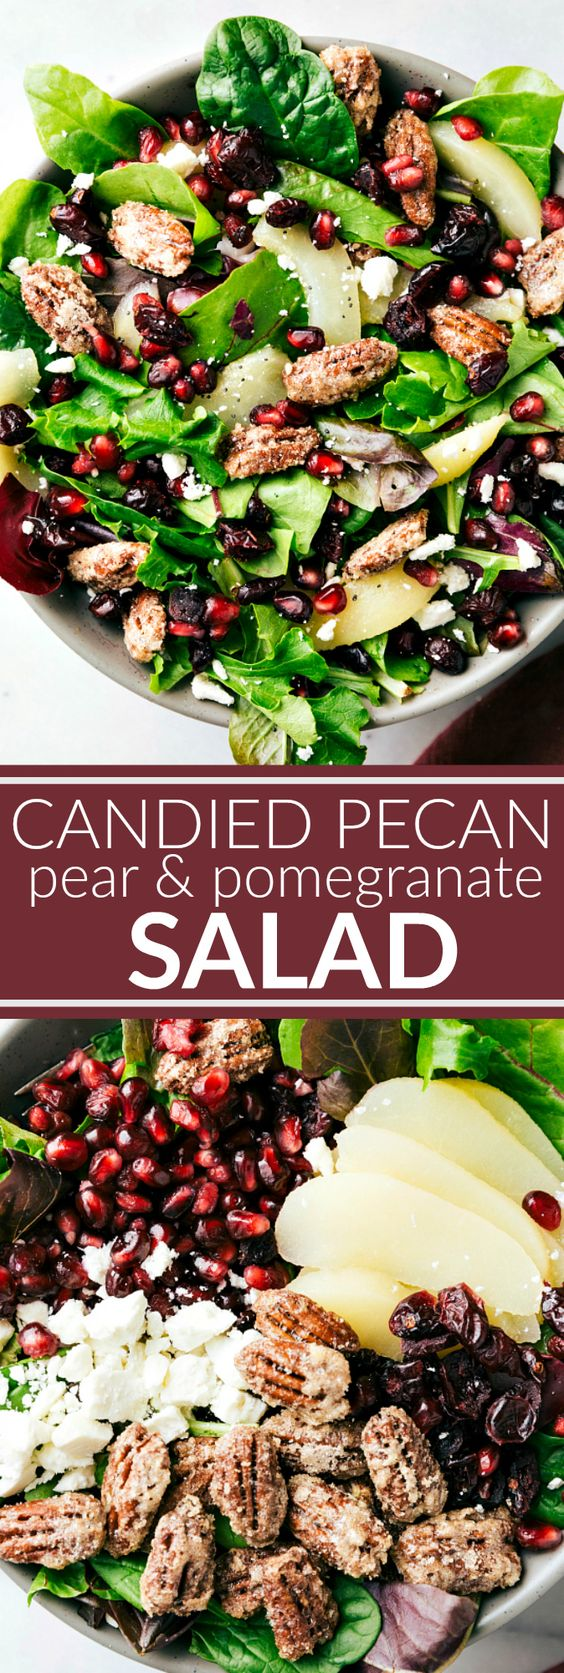 Candied Pecan, Pear & Pomegranate Salad Recipe via Chelsea's Messy Apron - An easy to make and delicious side salad -- candied pecans, pears, pomegranates, dried cranberries, and feta cheese with a simple incredible raspberry poppyseed dressing